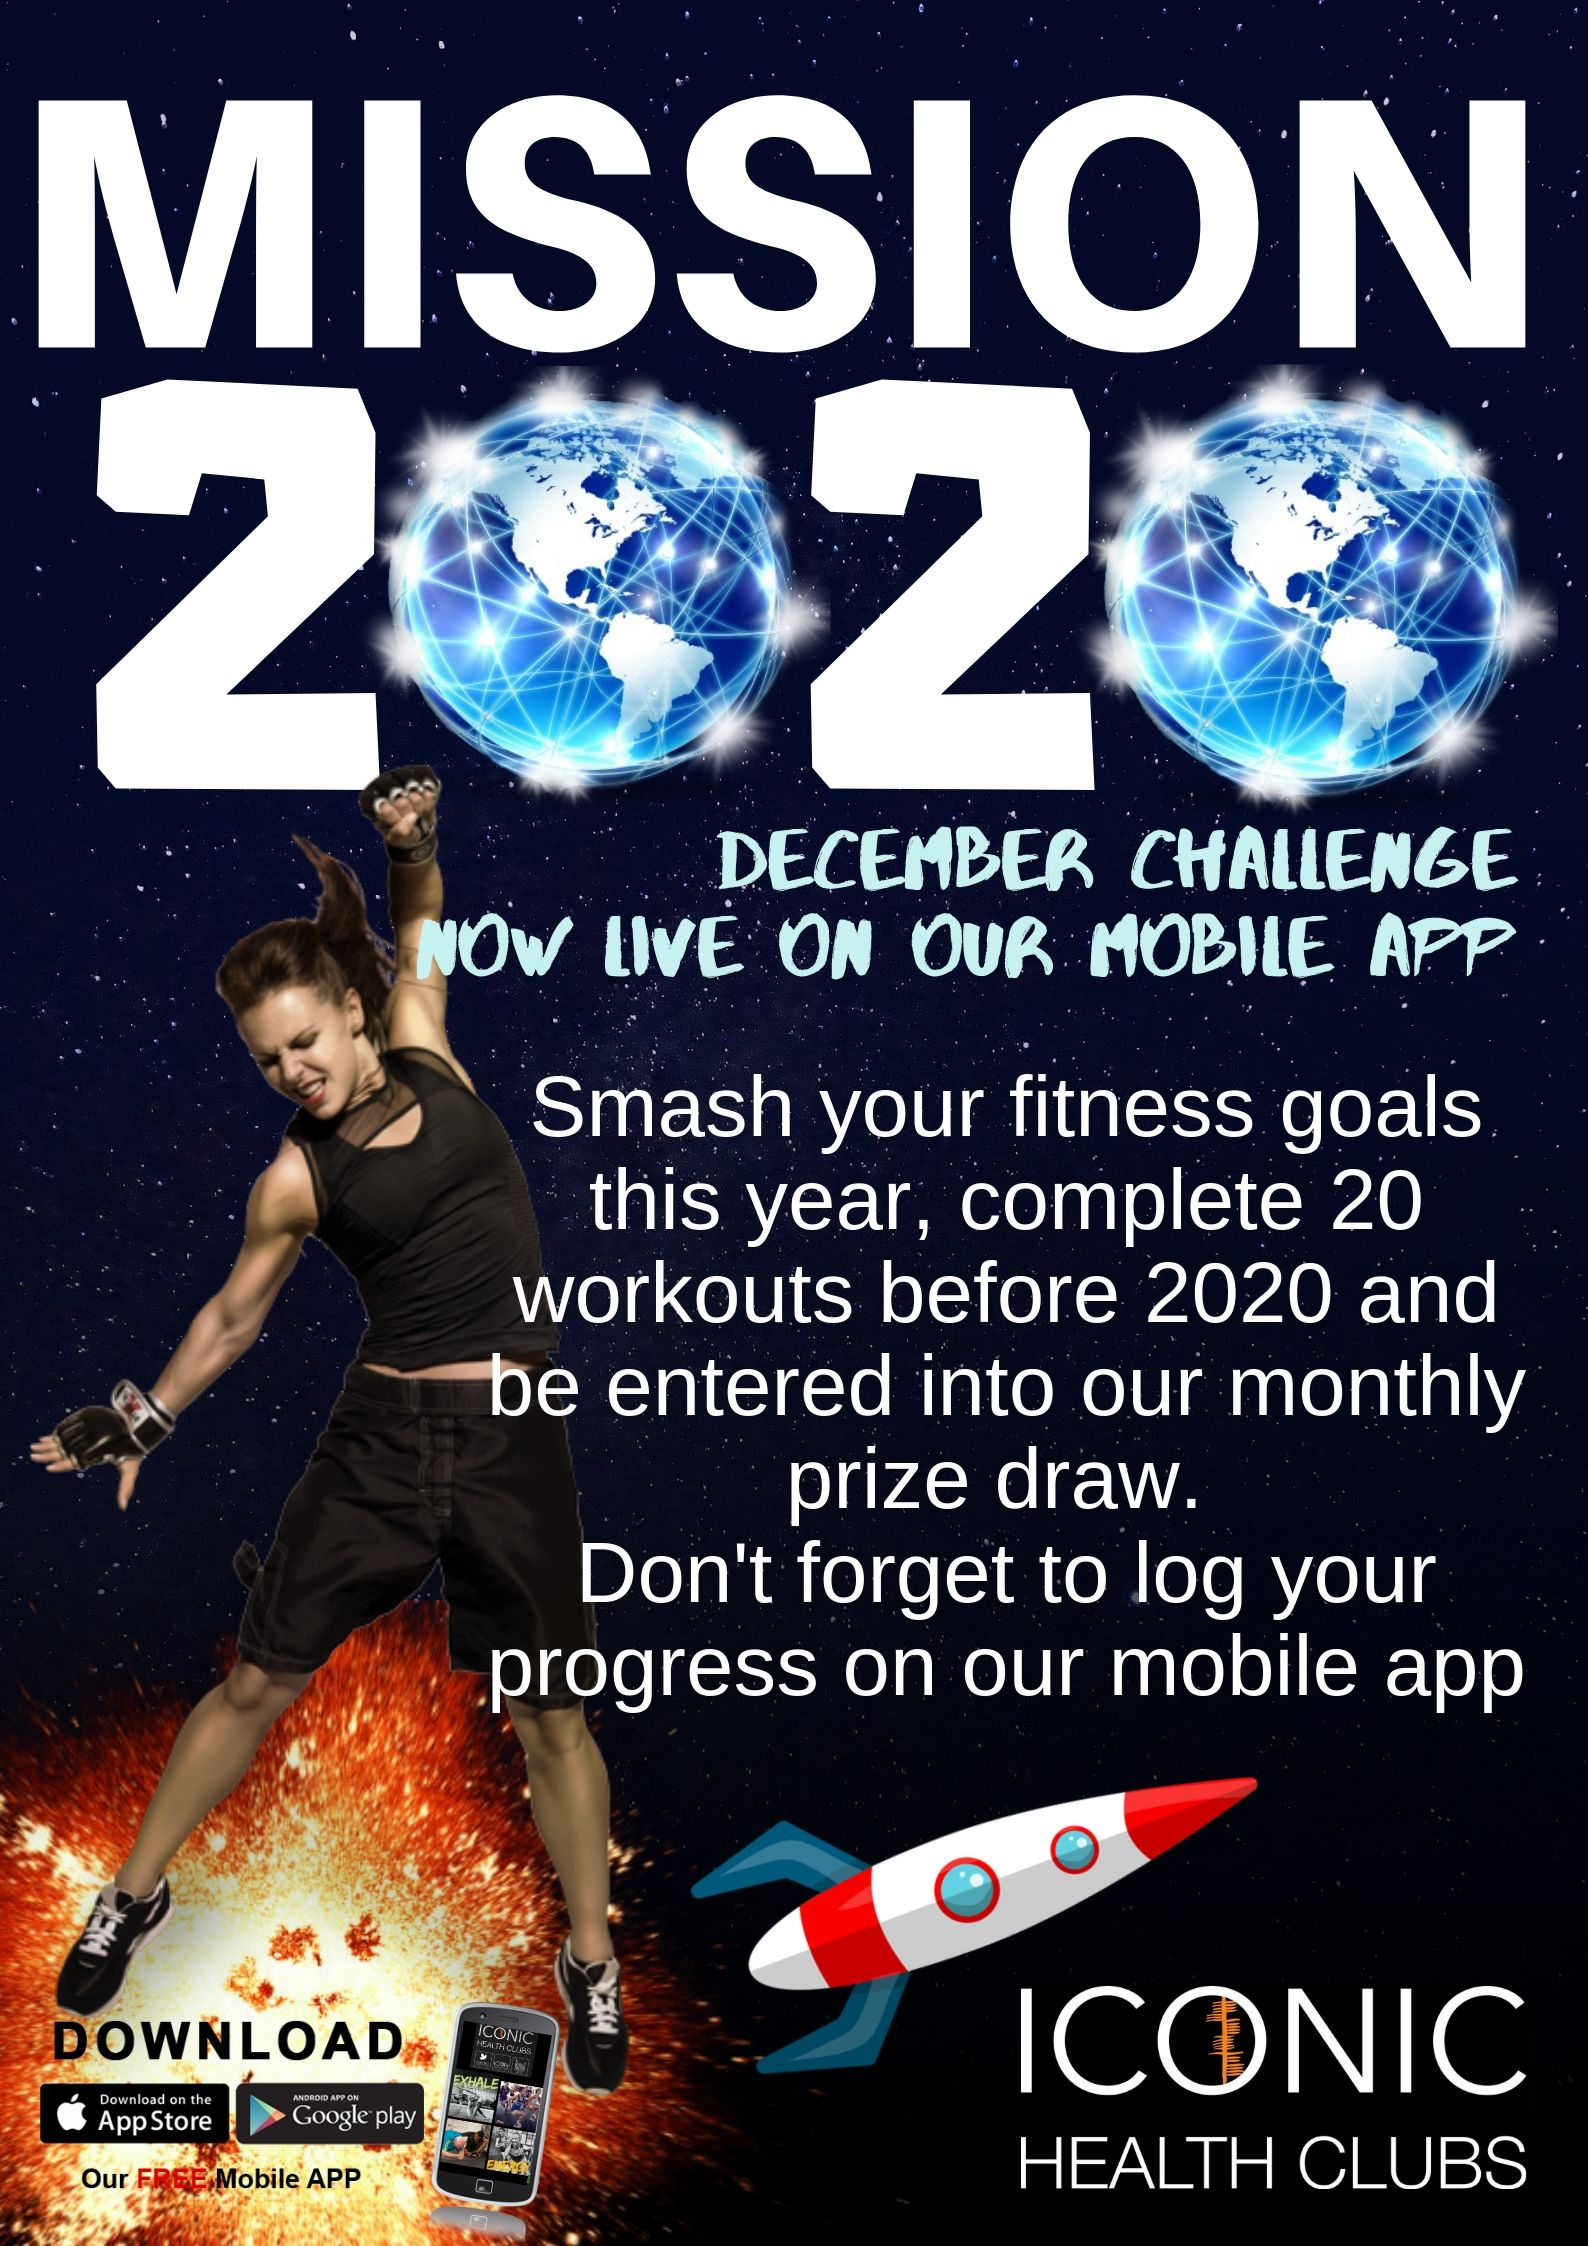 Gym Challenge dublin Mission 2020